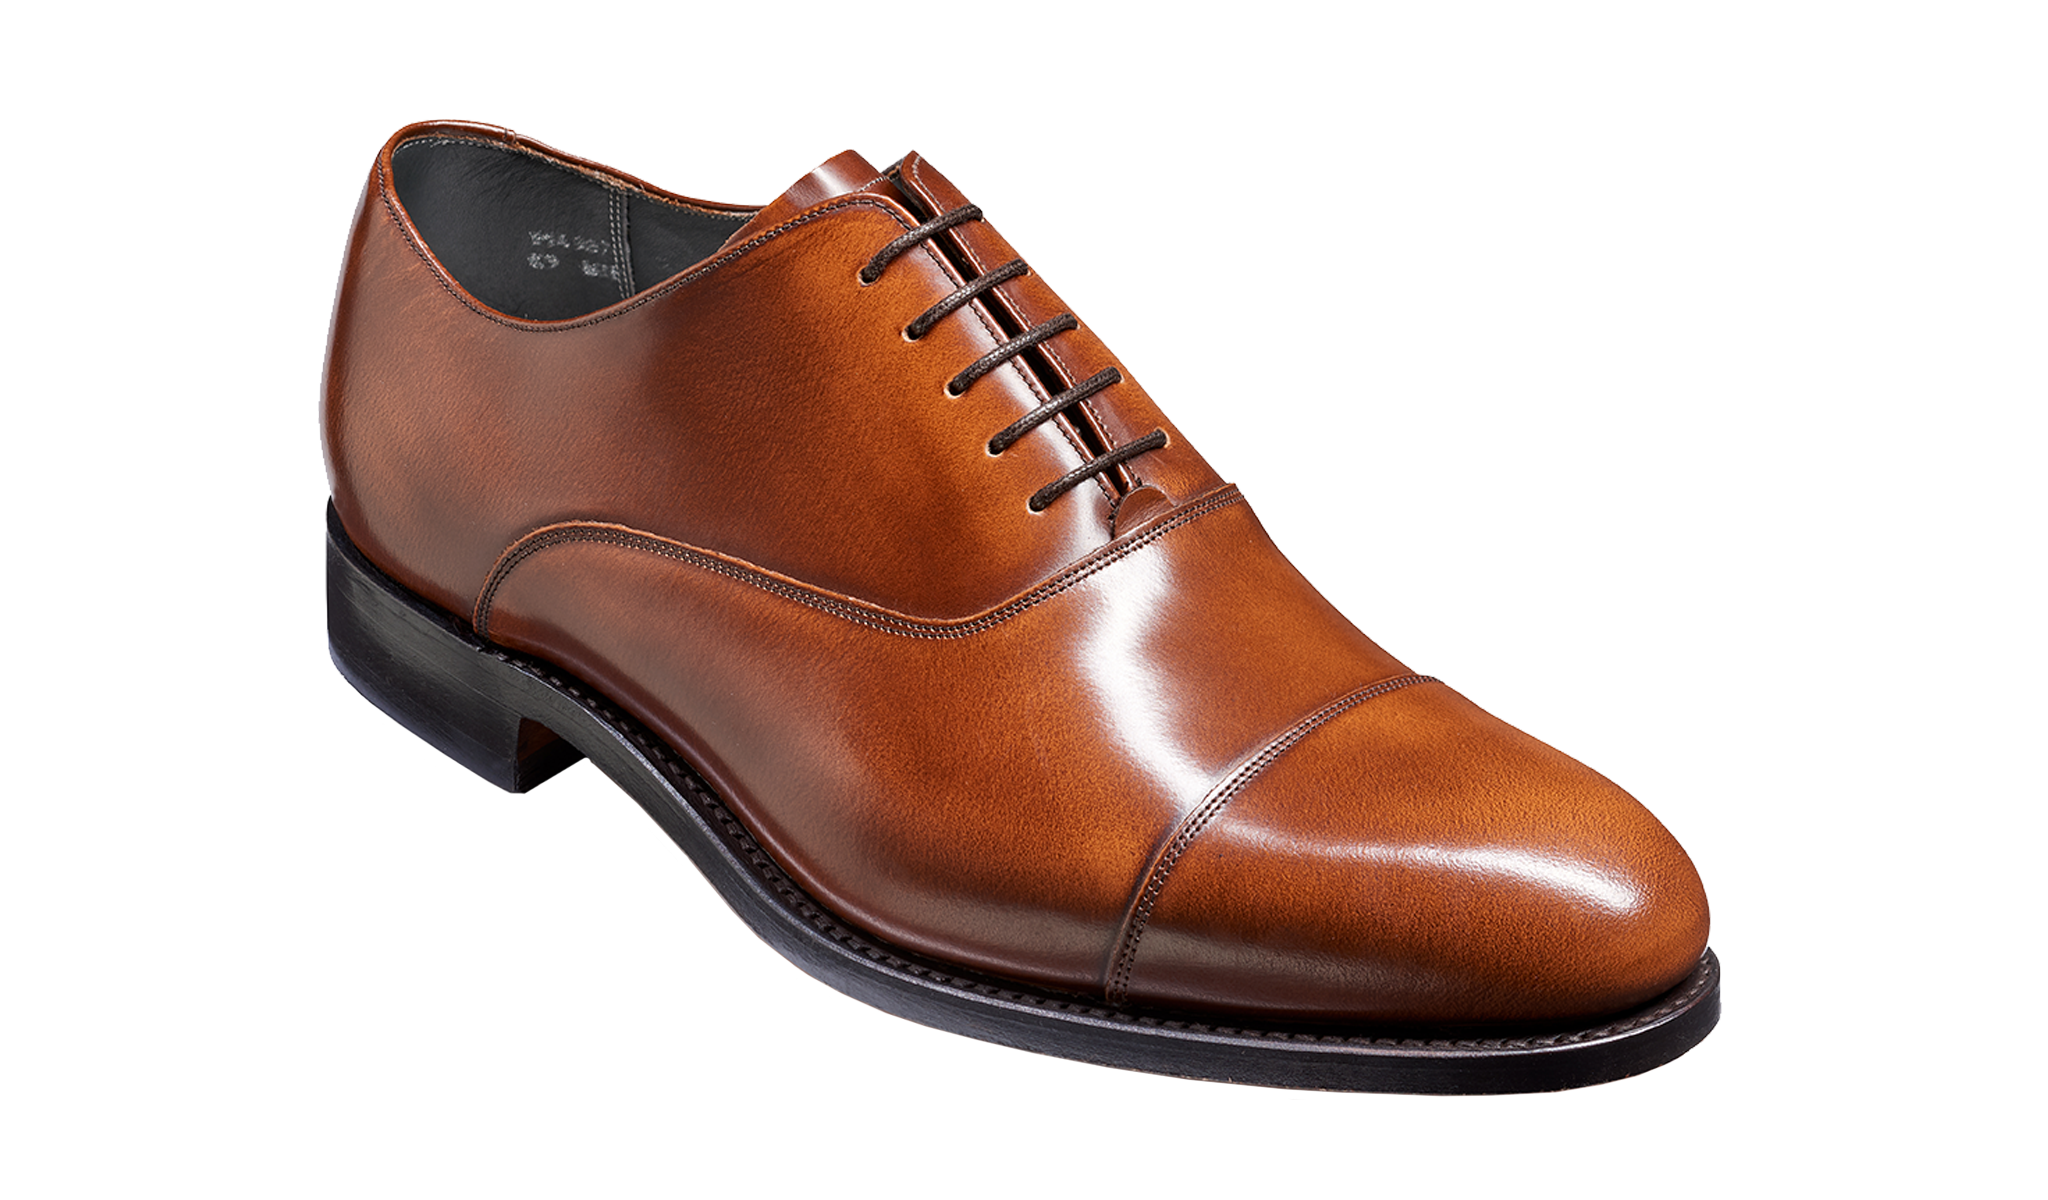 Winsford - Men's oxford shoe from Barker